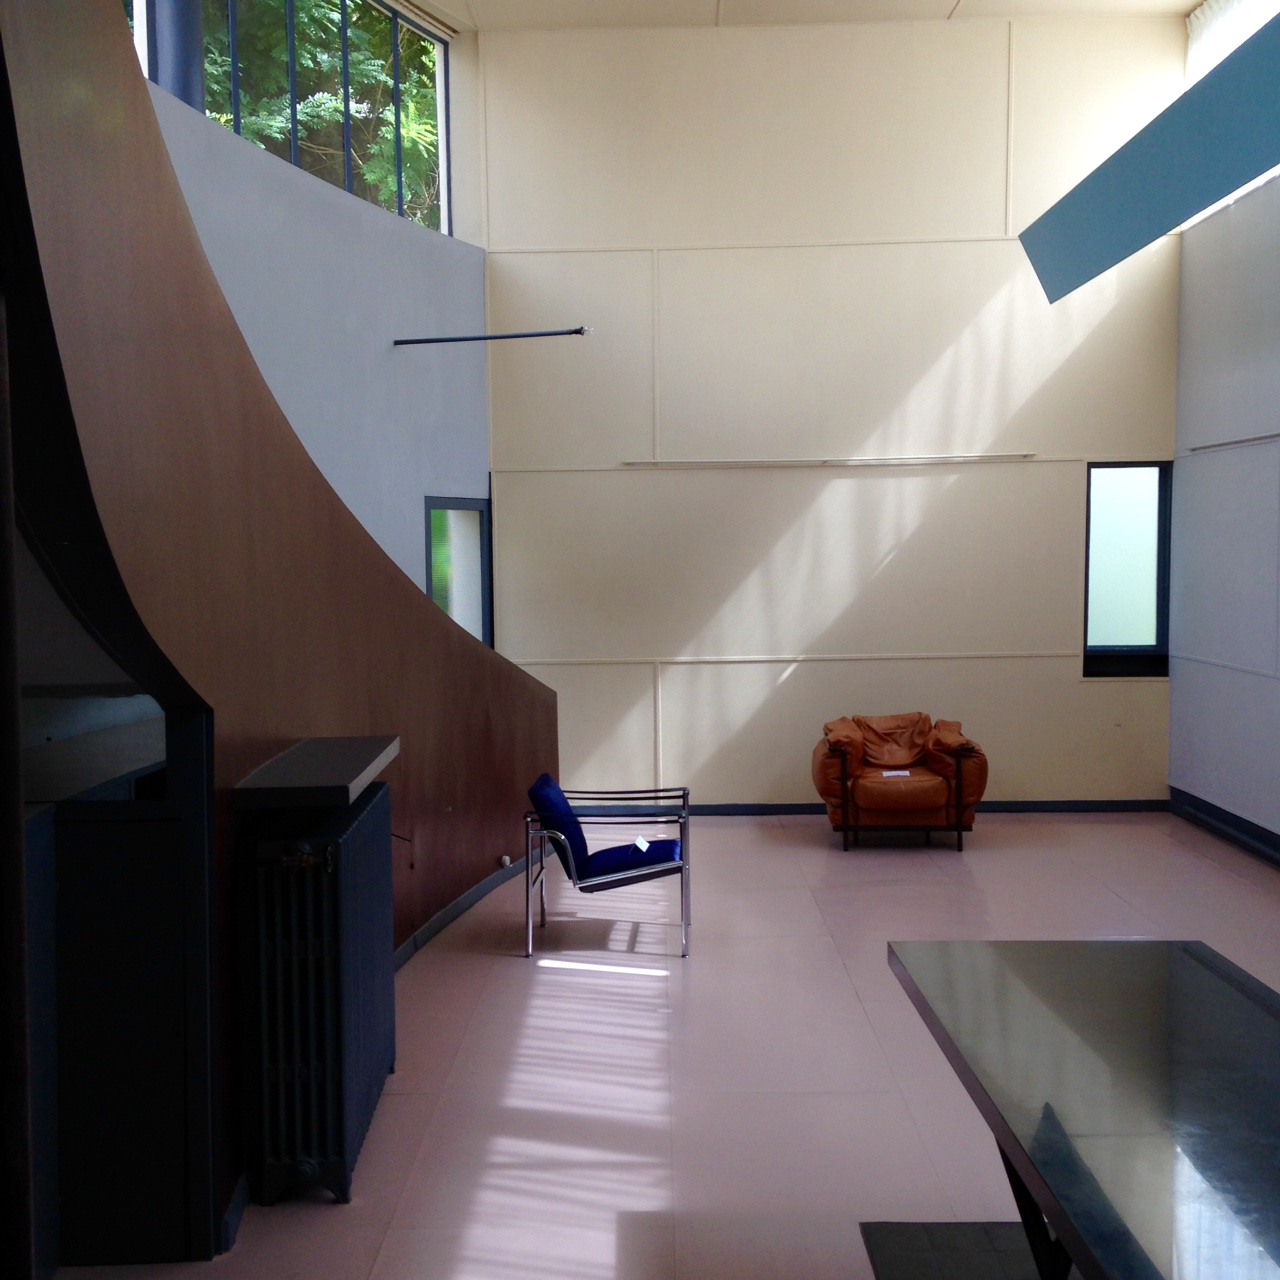 Design Trip | Le Corbusier in Paris – ecomodernstudios